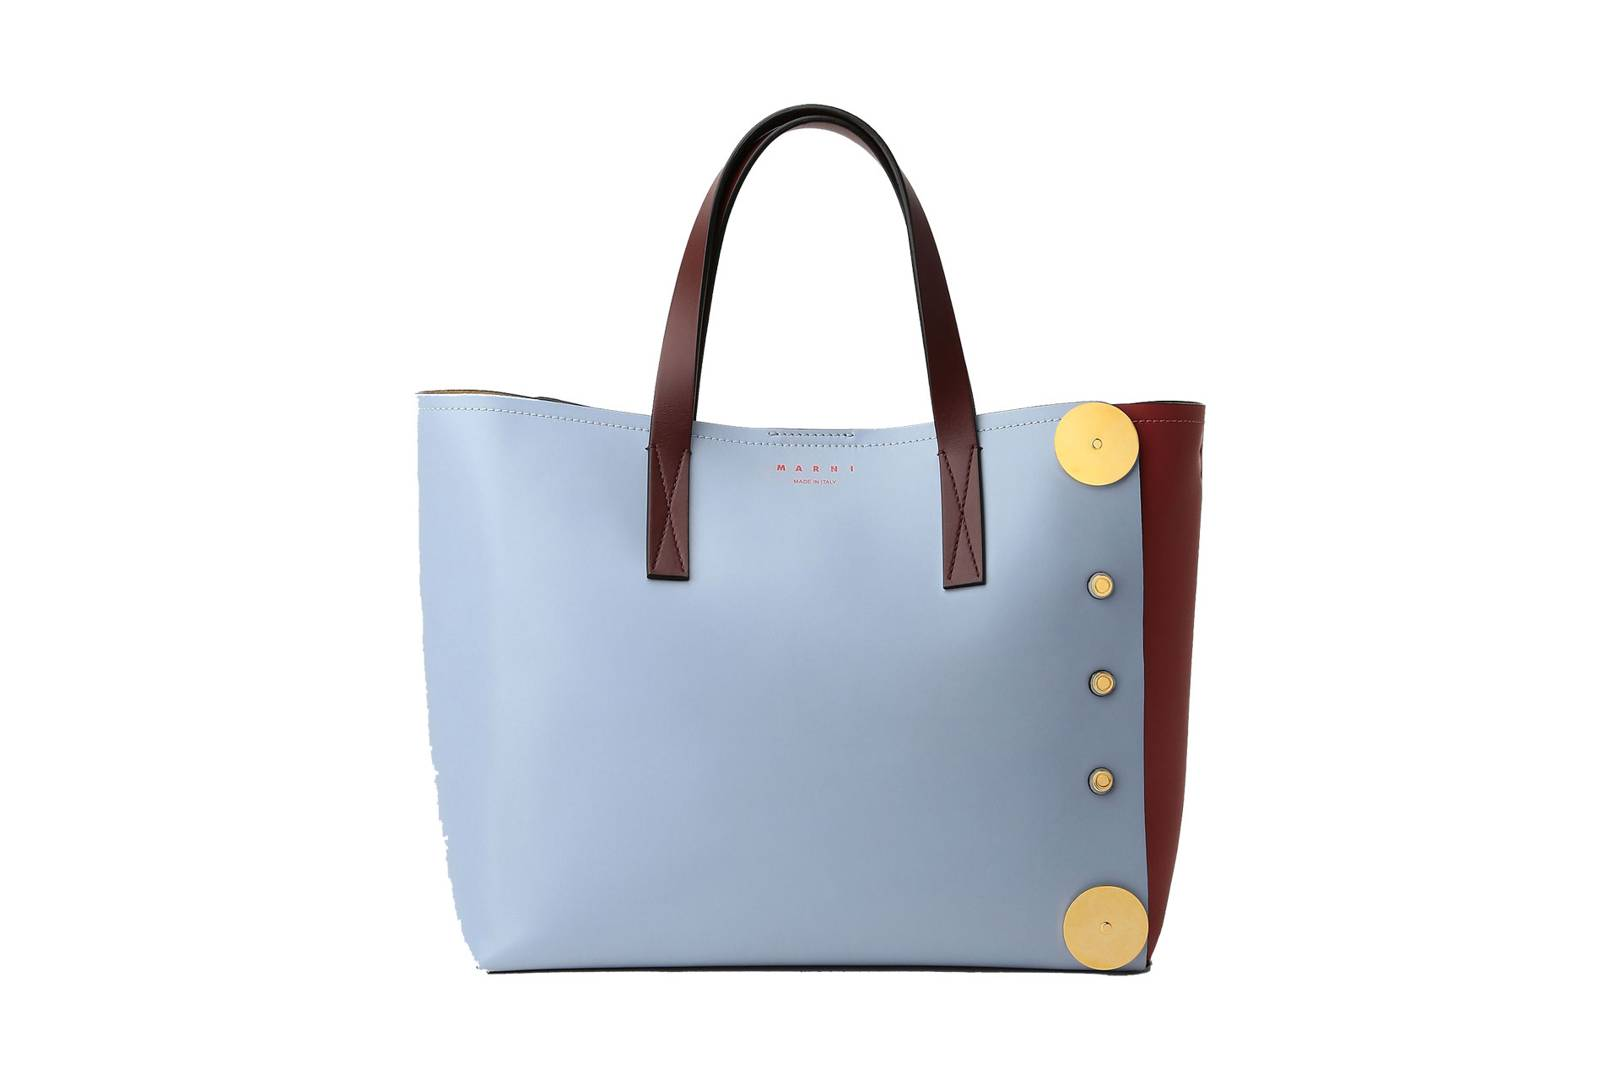 e782c36add362 The Tote Bag  The Best Styles To Wear With Everything